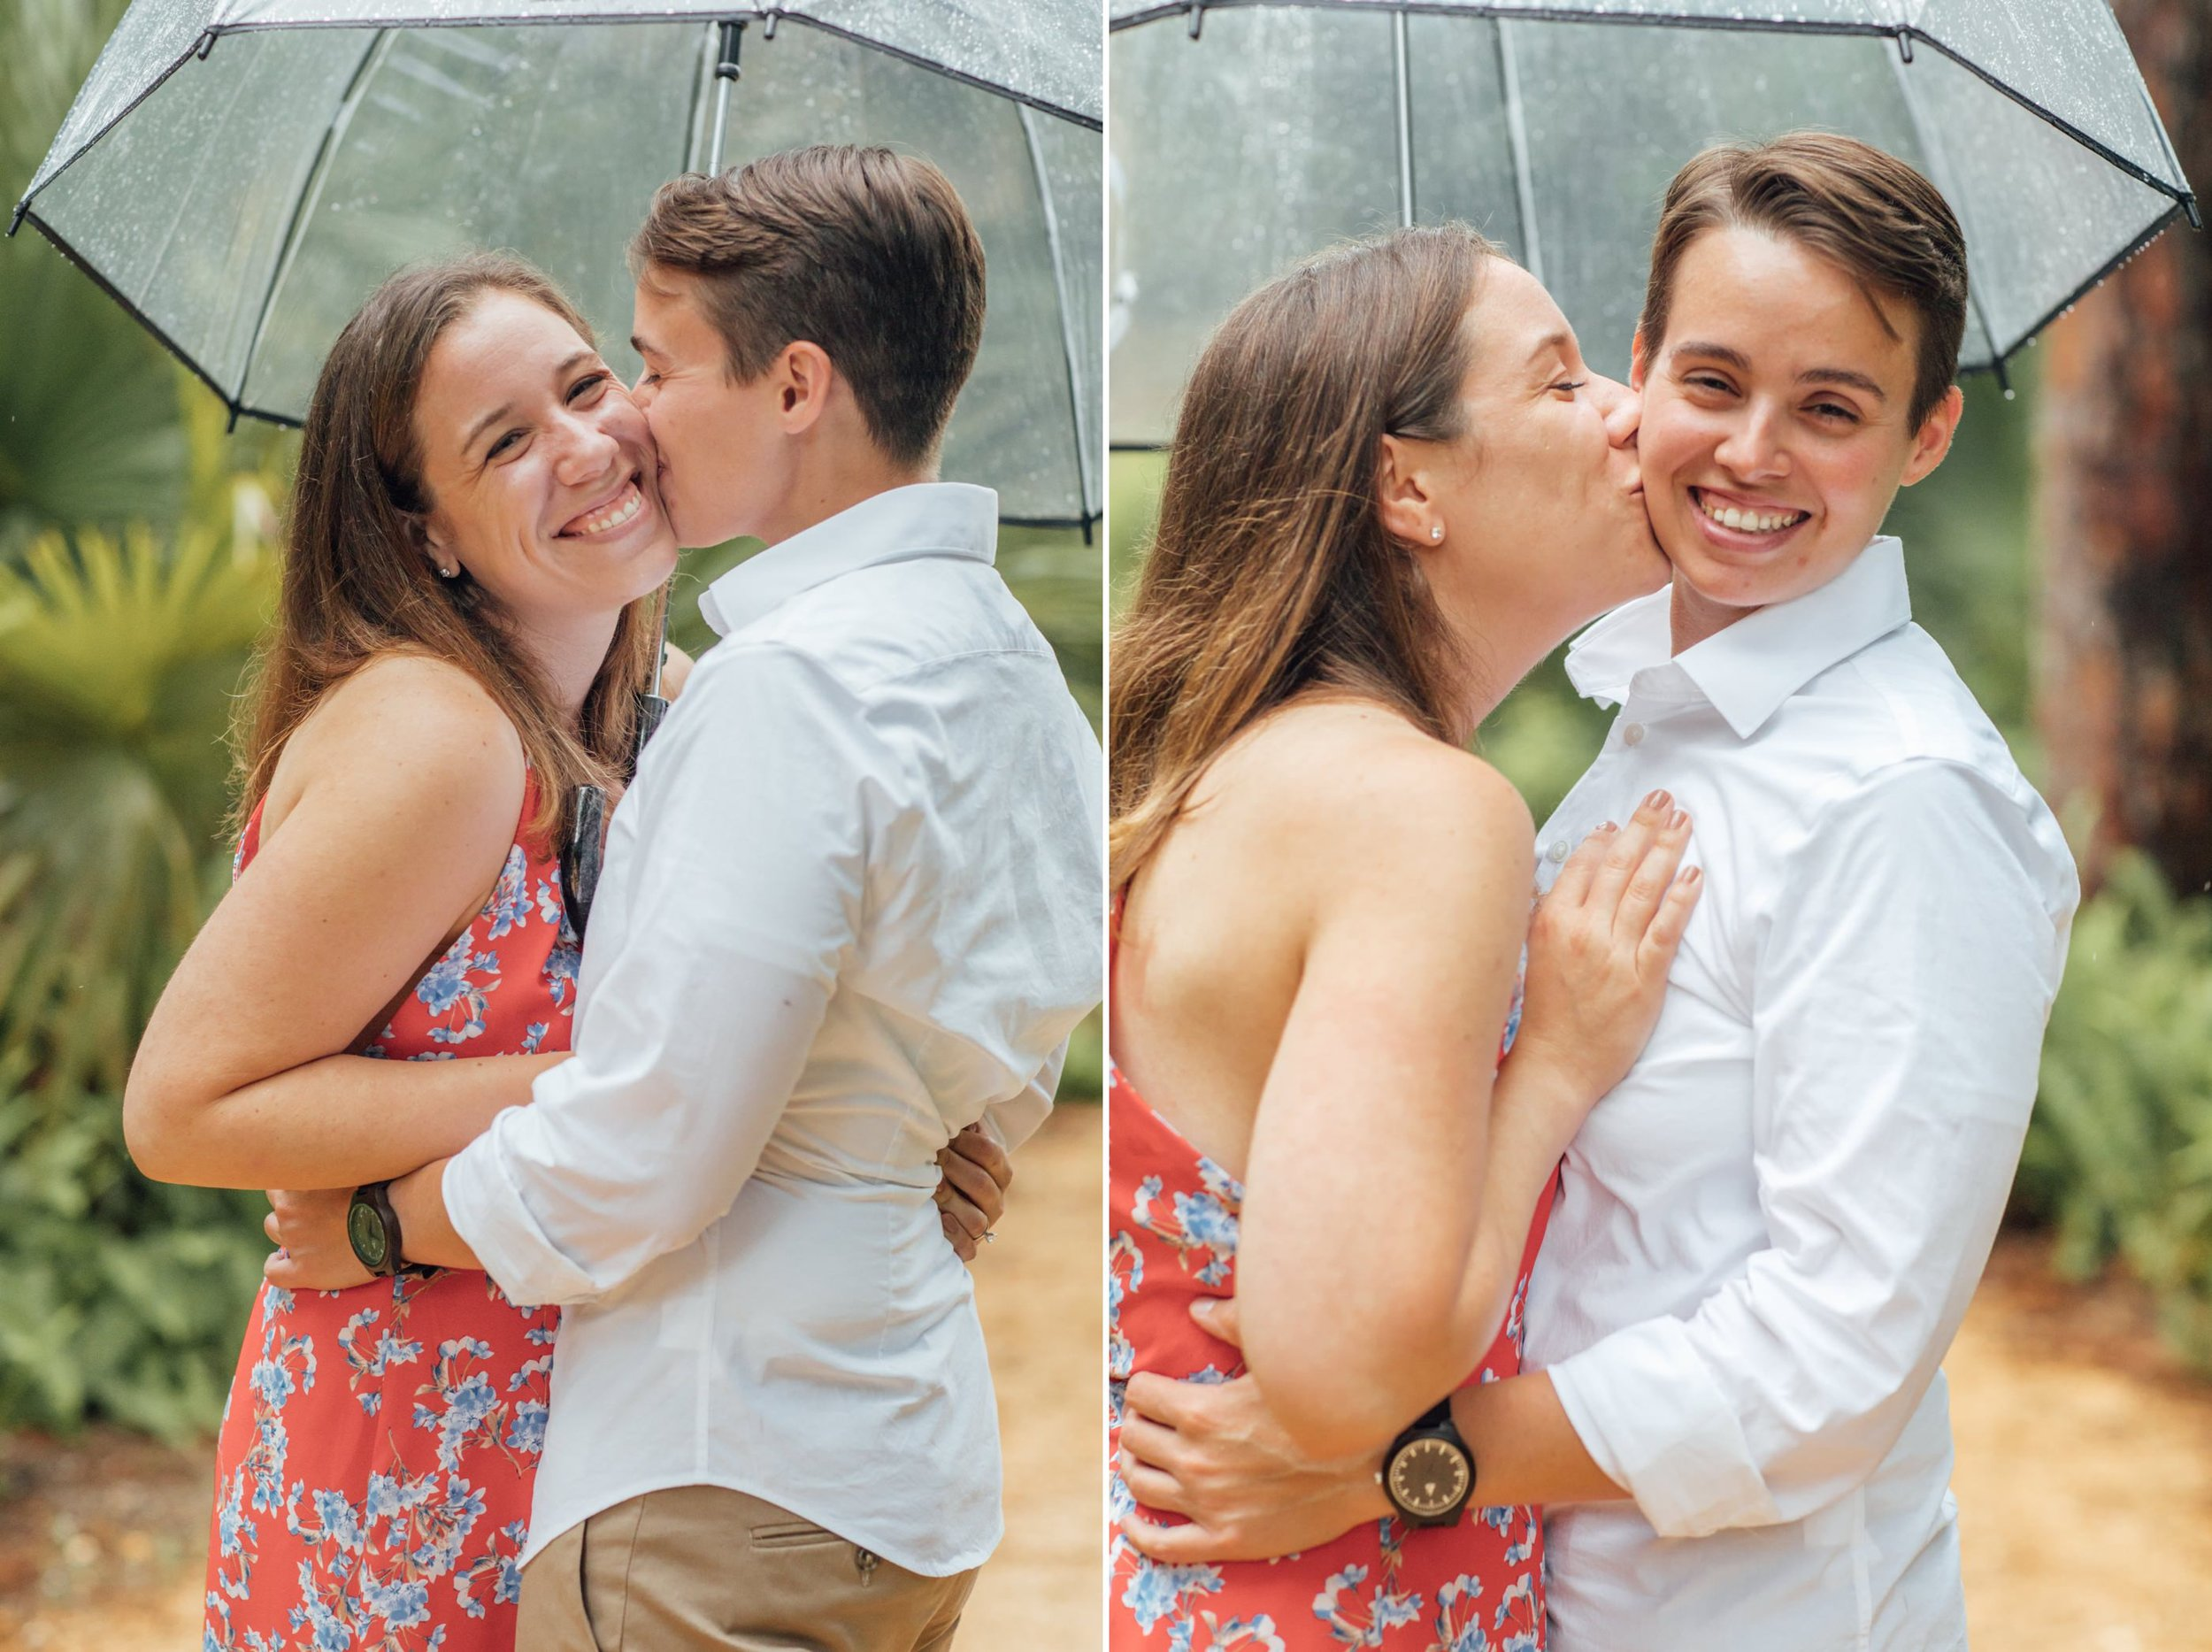 Orlando Natural Forest State Park Engagement Photos- Romantic LGBT Engaged Couples photos1.jpg